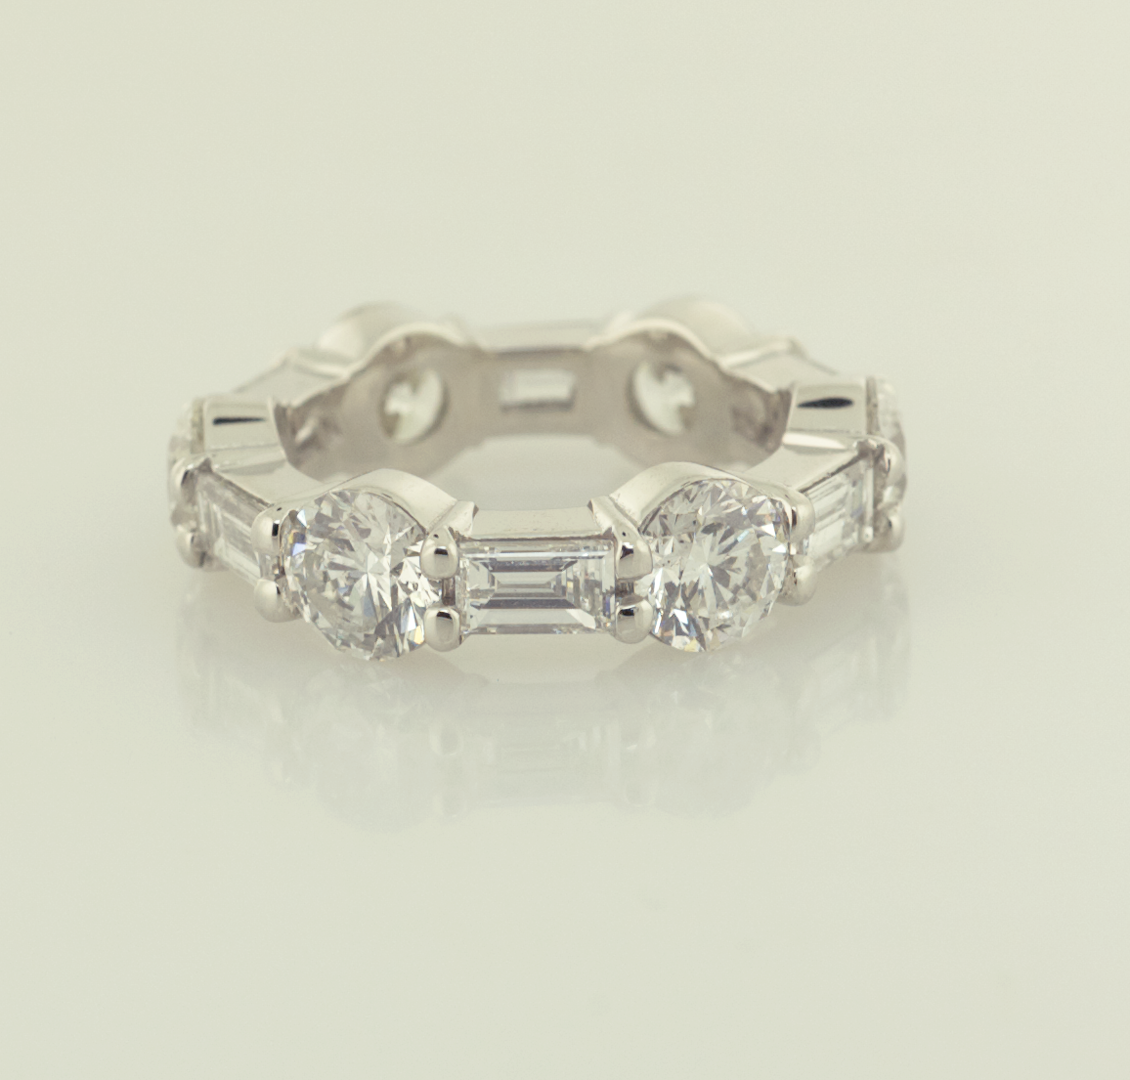 Platinum, Round and Baguette eternity band set 3.60ct rounds 1.87ct baguettes